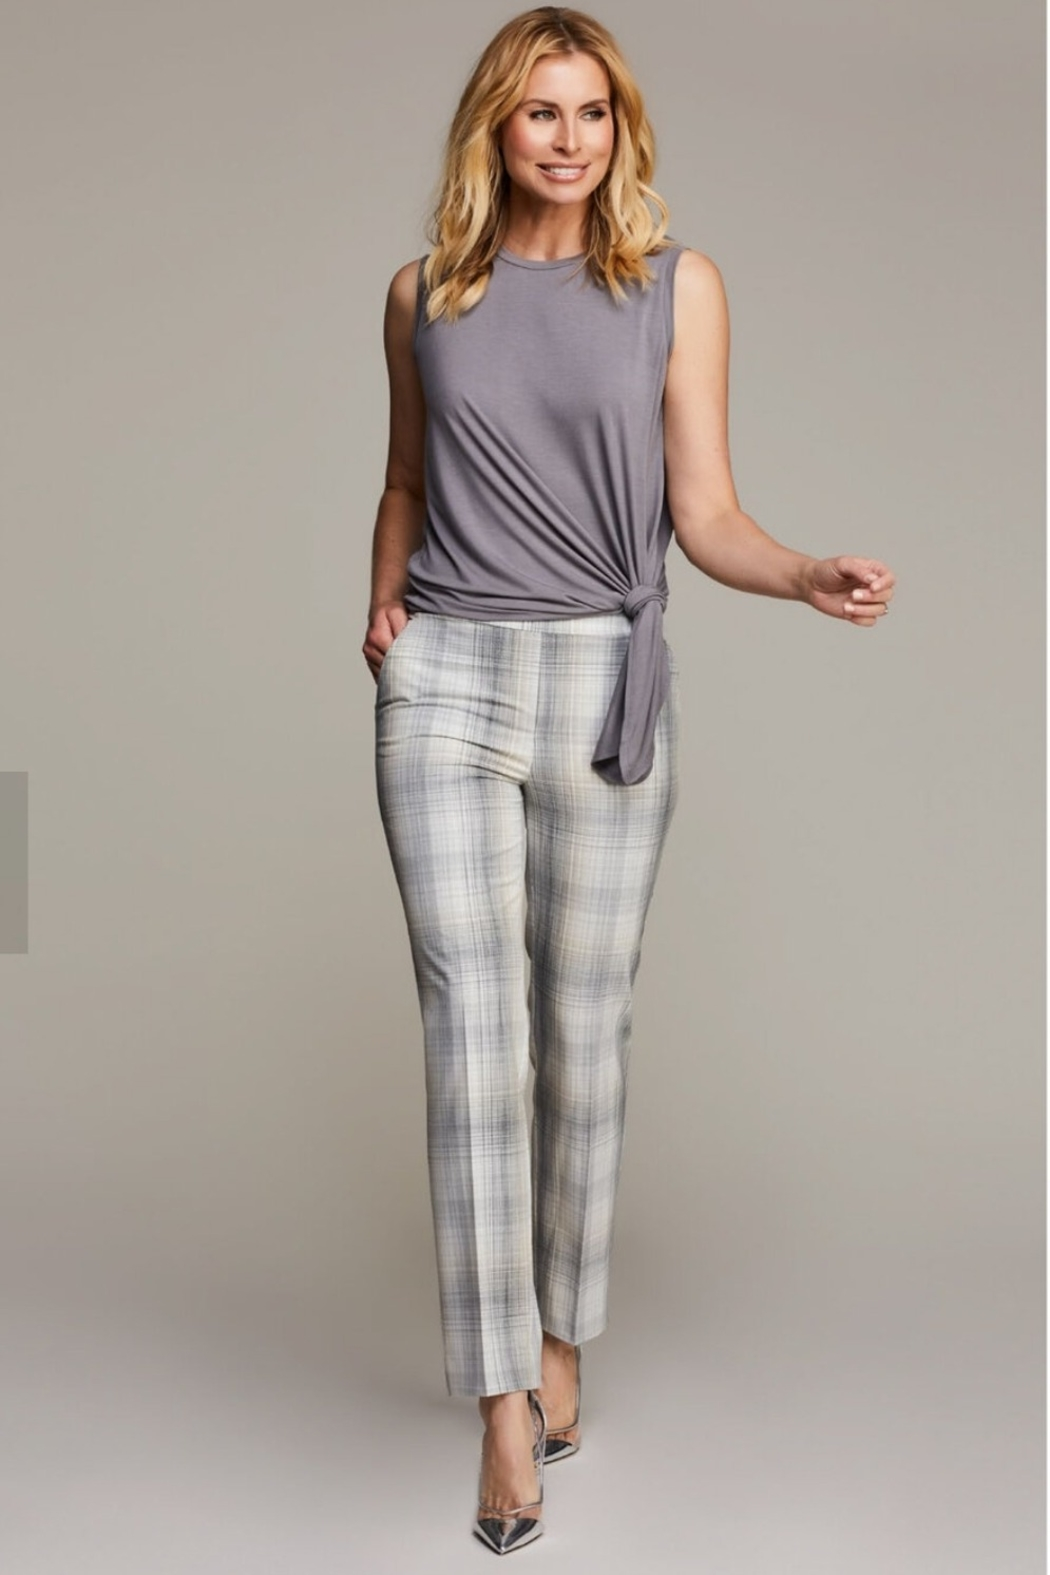 Up! Sketch Plaid Eco-Friendly Pull-On Trouser, Haze - Front Cropped Image